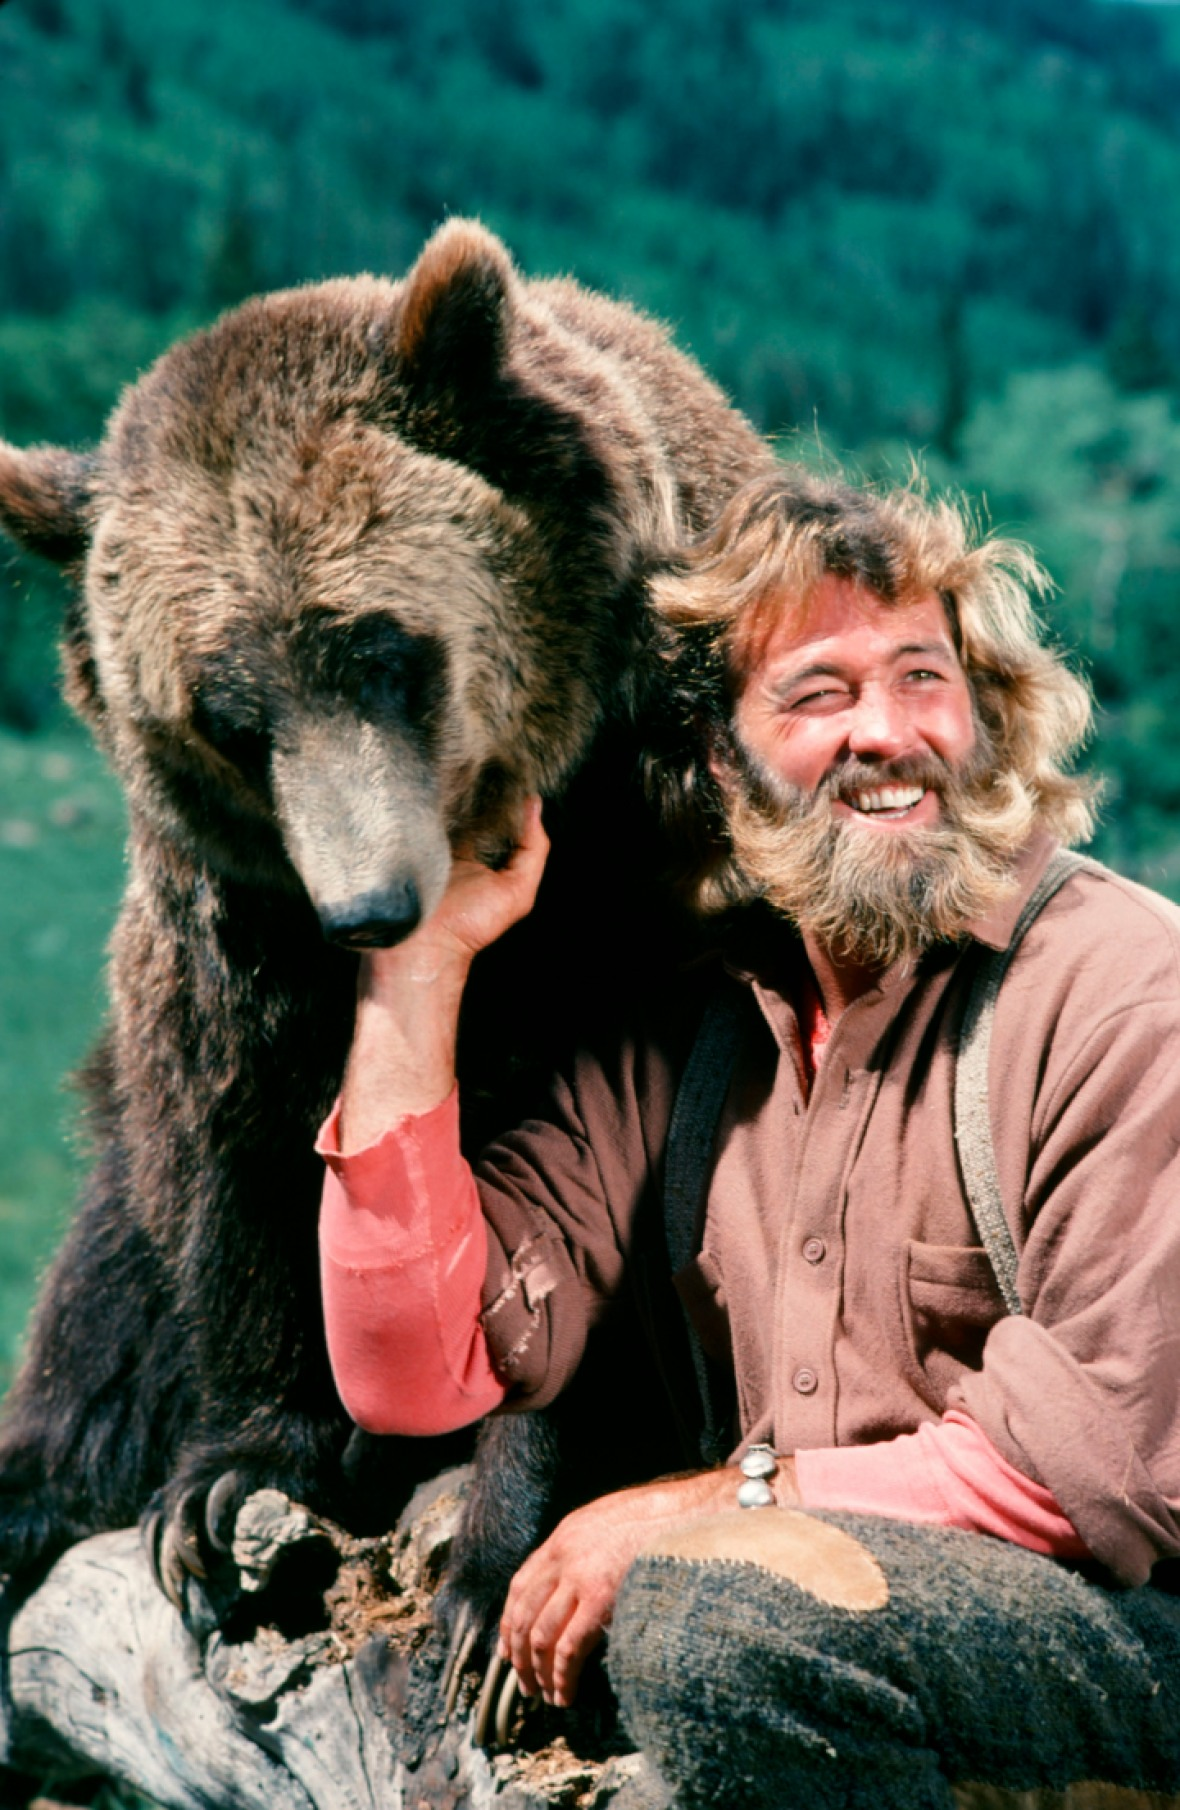 dan haggerty 'grizzly adams'